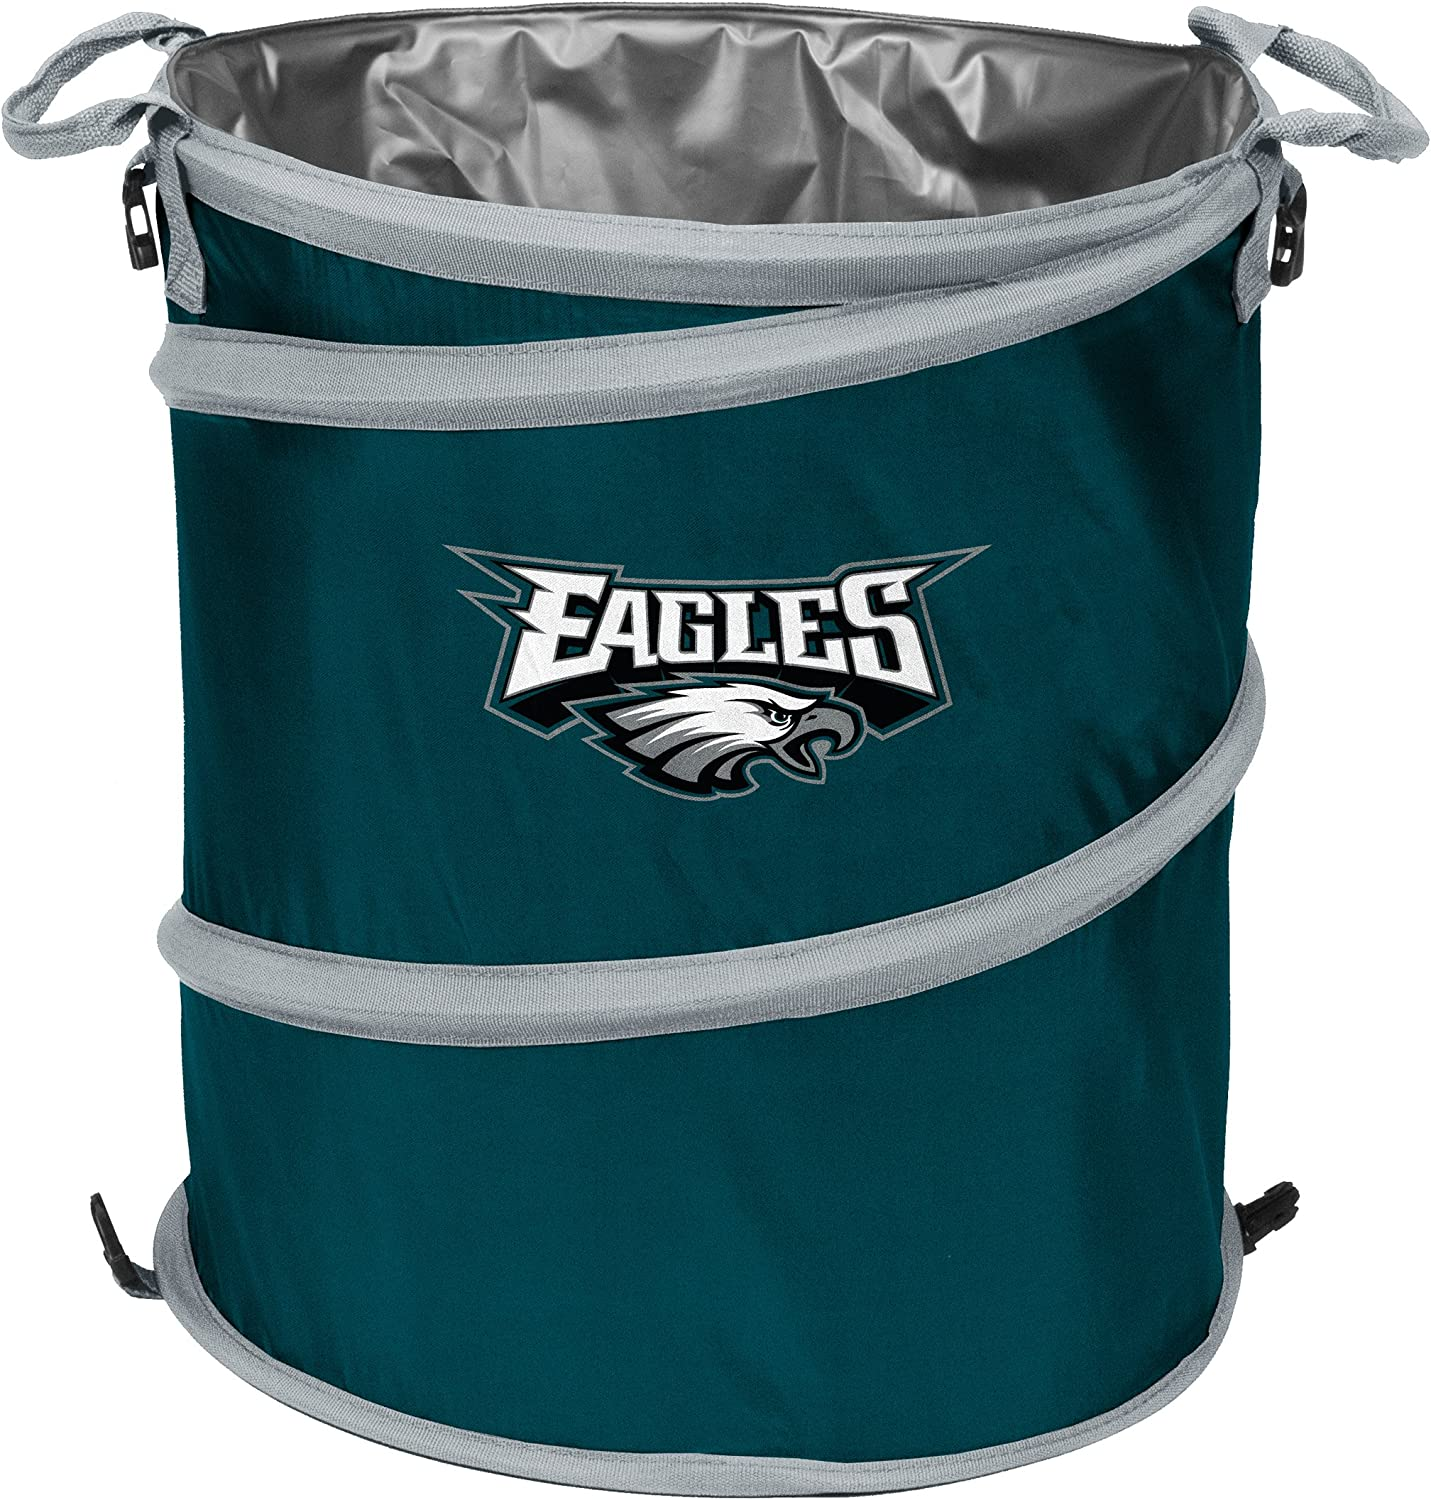 Logo Brands Officially Licensed NFL 3-in-1 Cooler, Team Color